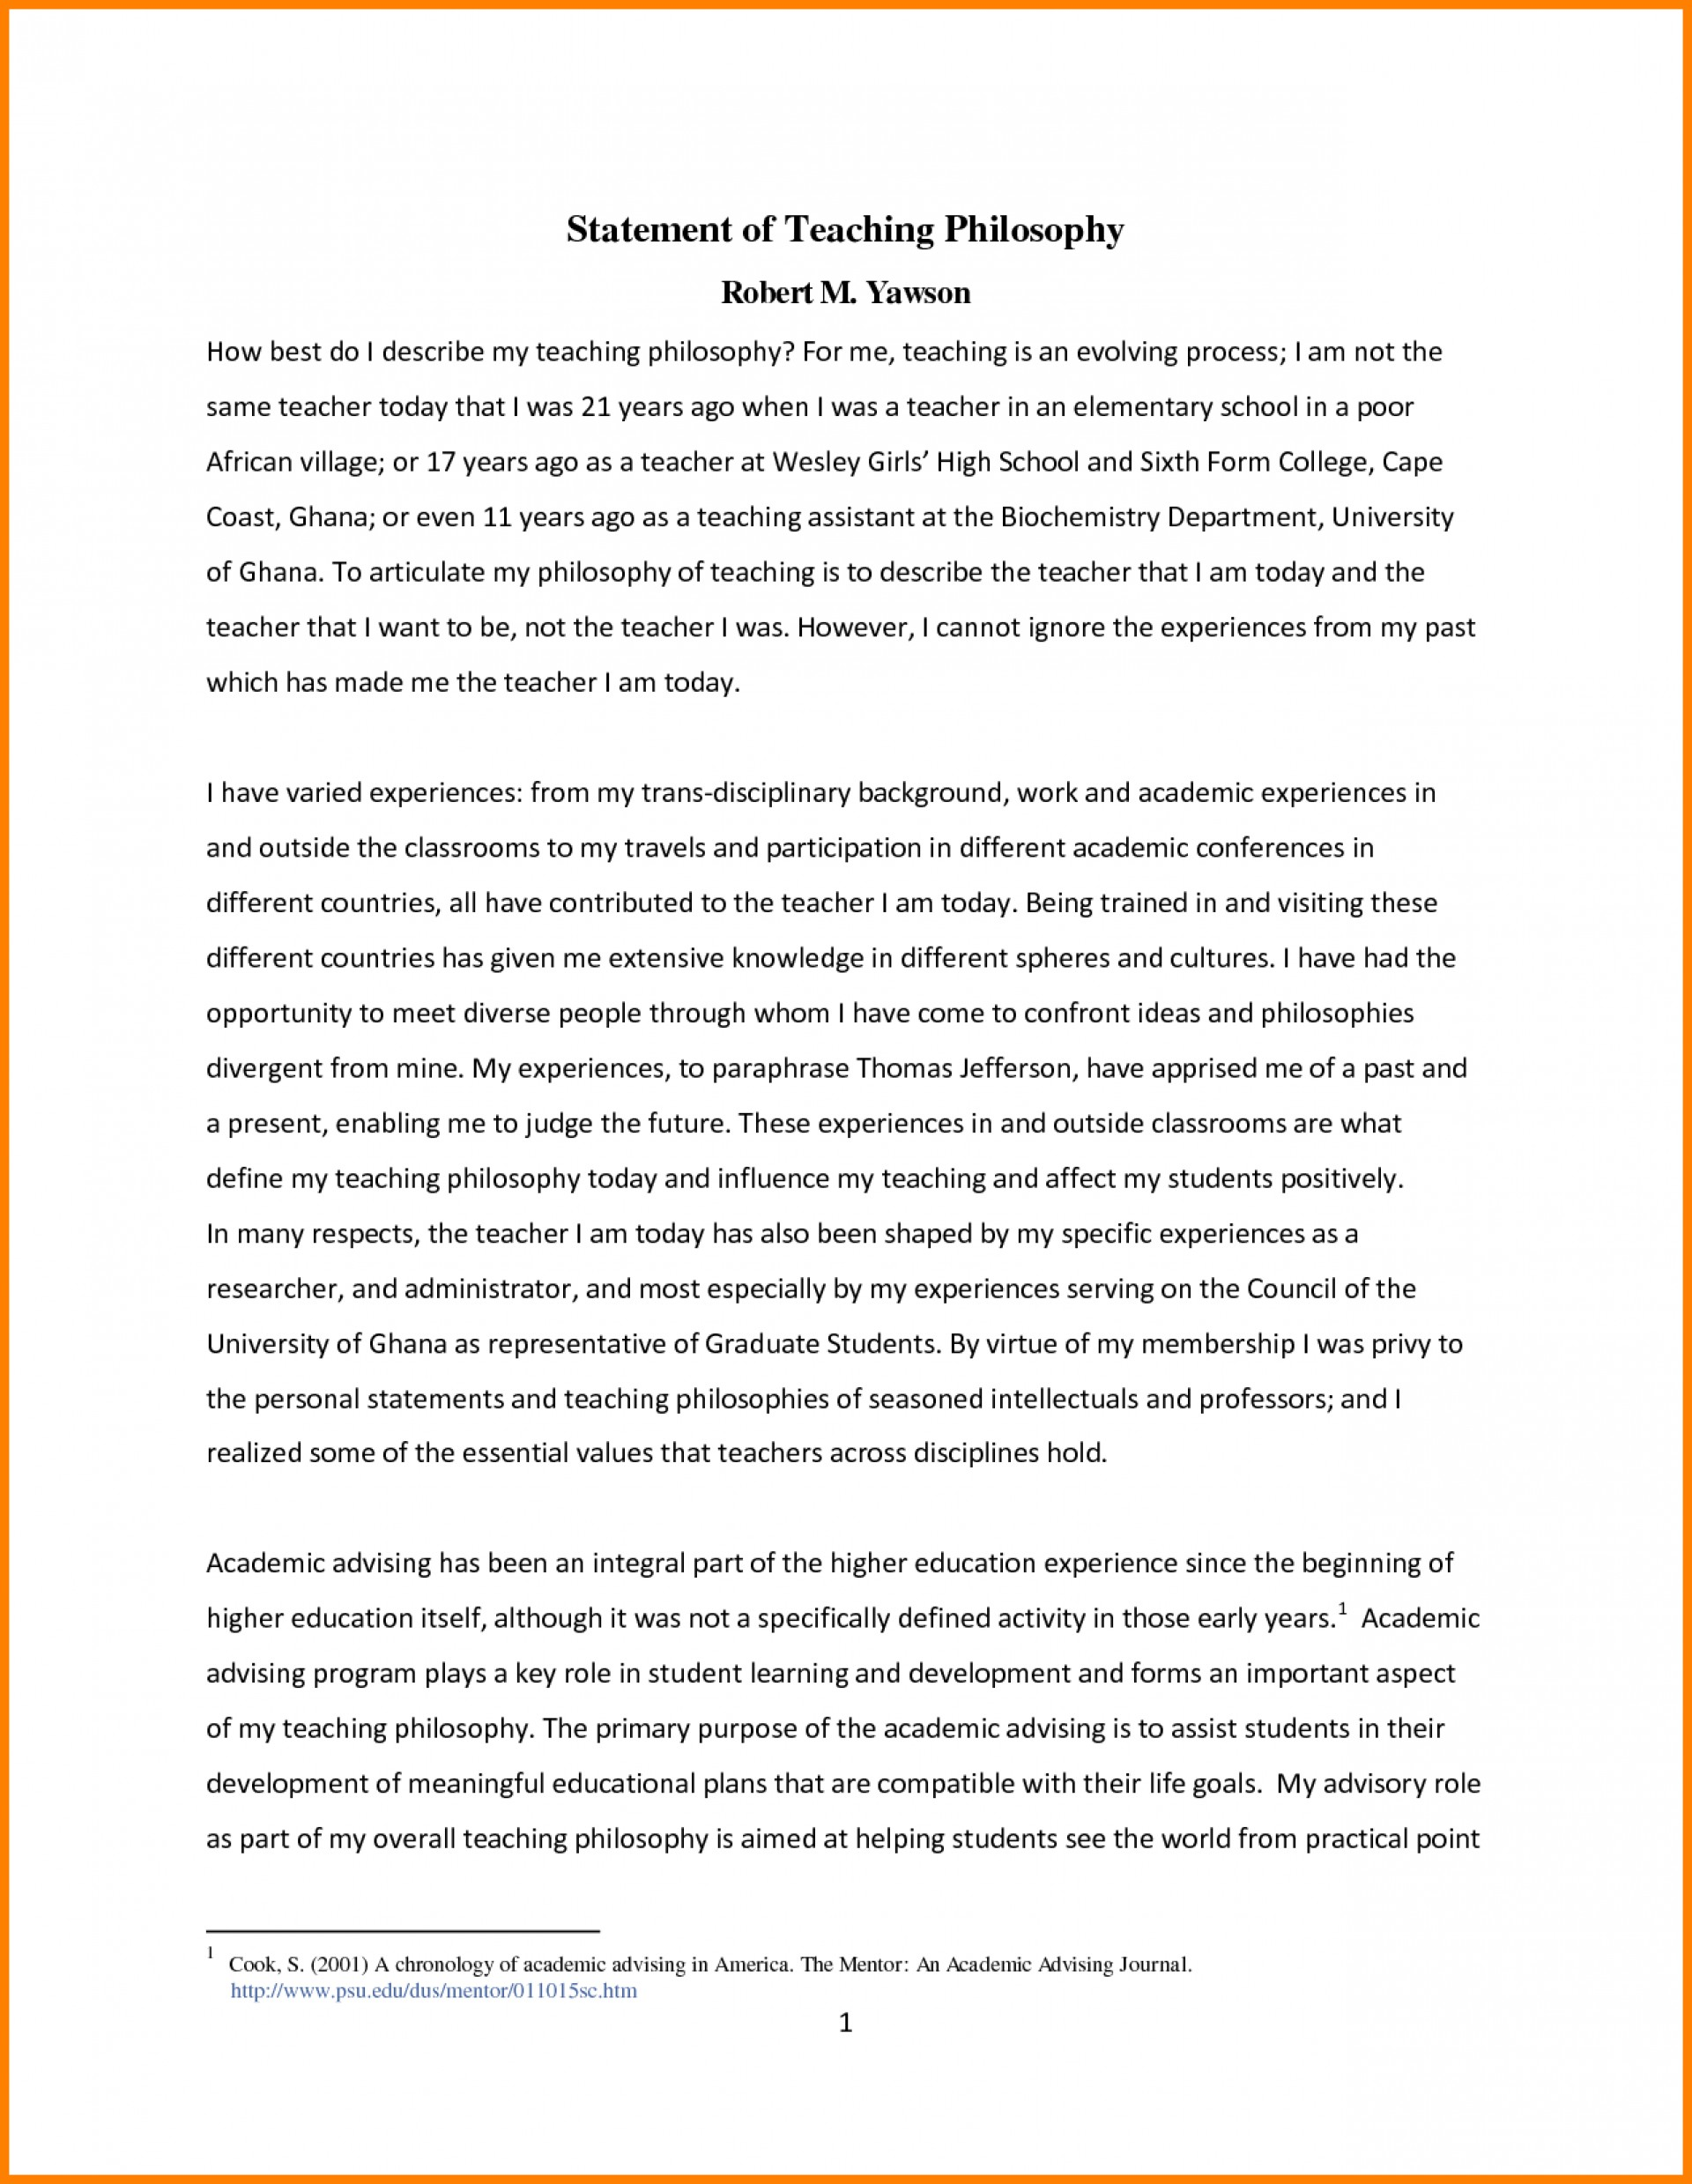 004 Why I Want To An Early Childhood Teacher Essay Example Future Teachers Philosophy Of Education Coursework Academic Essays On Pevita Examples L My Exceptional Be A Preschool 1920